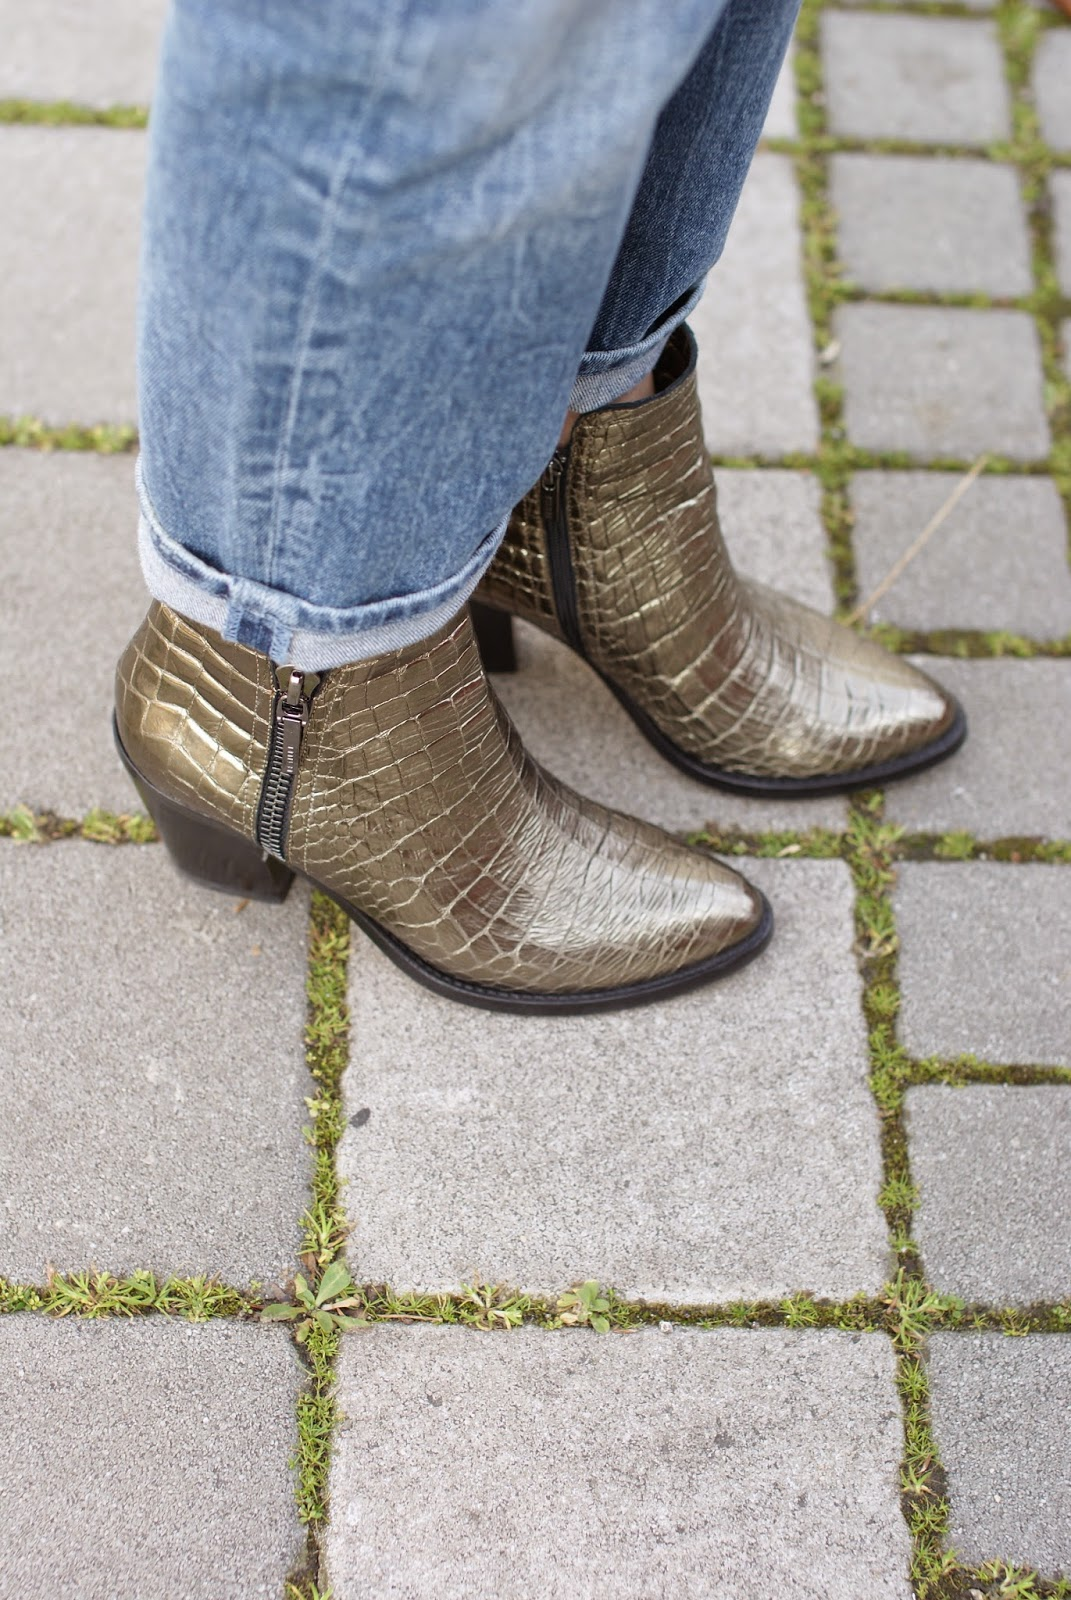 Le Silla, Le Silla golden texan ankle boots, Fashion and Cookies fashion blog, fashion blogger